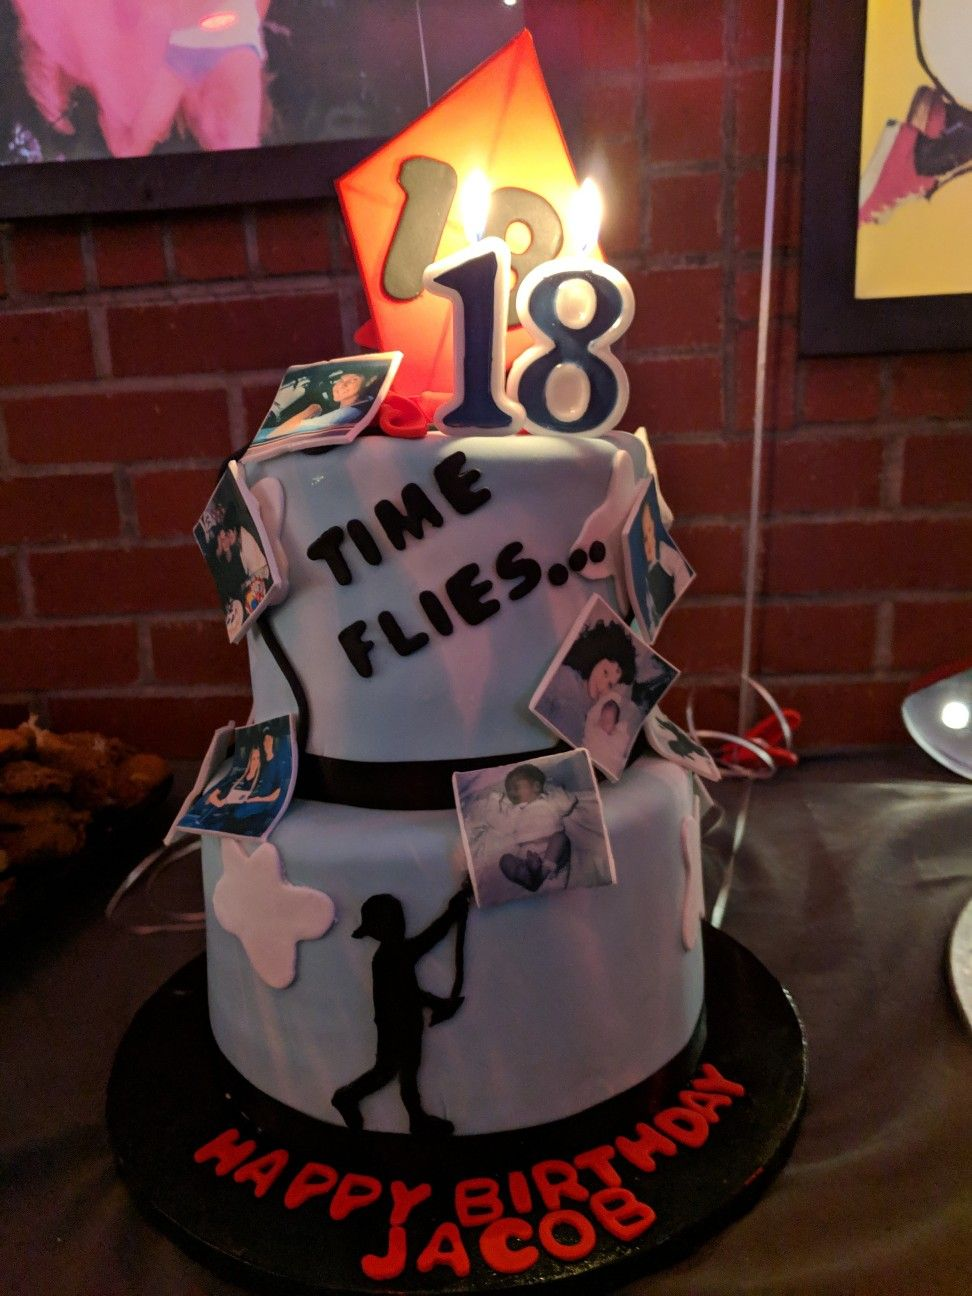 My Sons 18th Birthday Cake Theme How Time Flies 18th Birthday Cake 18th Birthday Birthday Cake